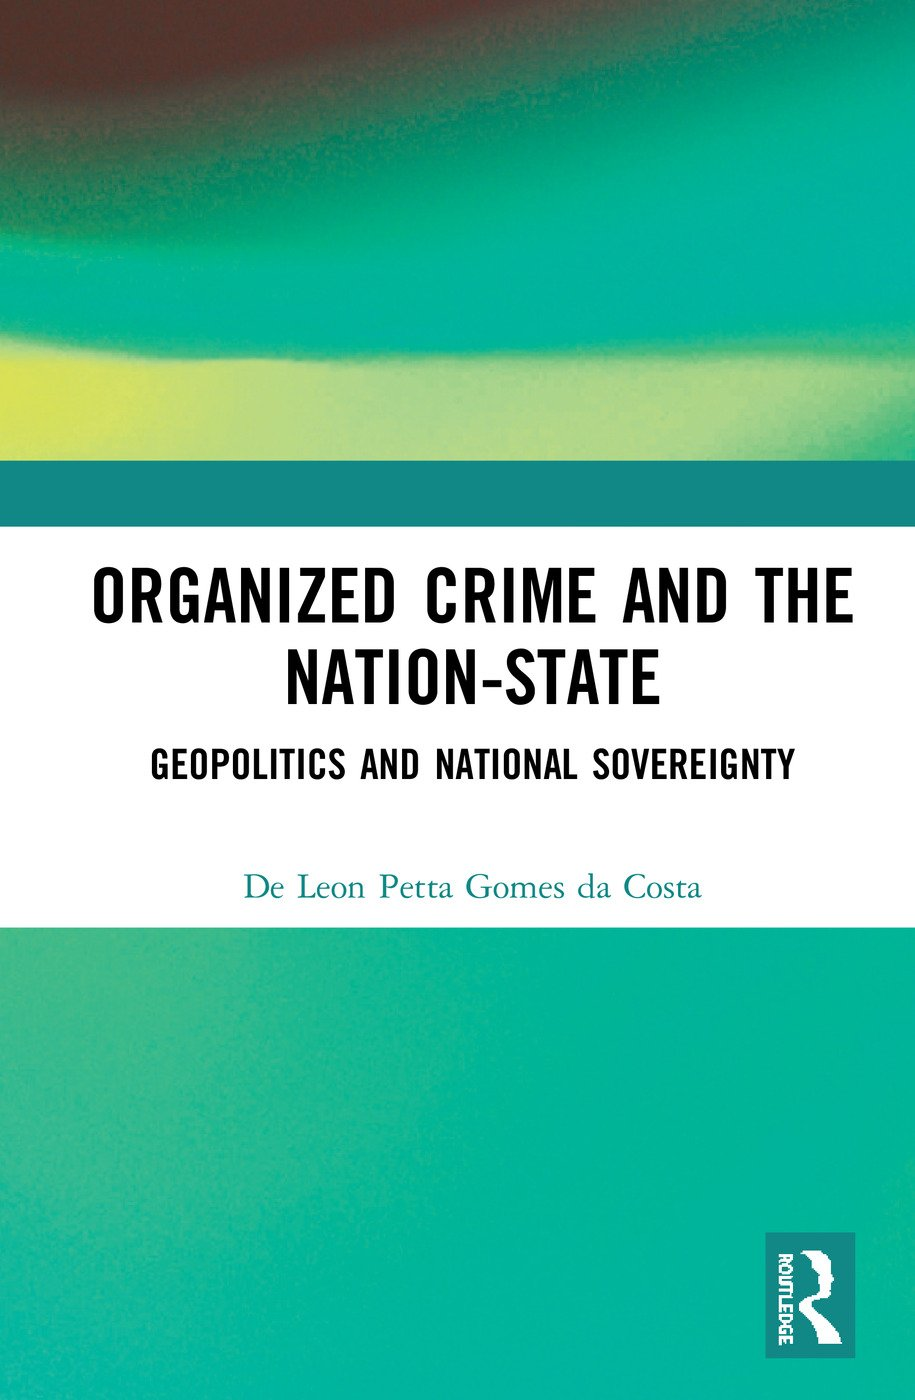 Organized Crime and the Nation-State: Geopolitics and National Sovereignty book cover